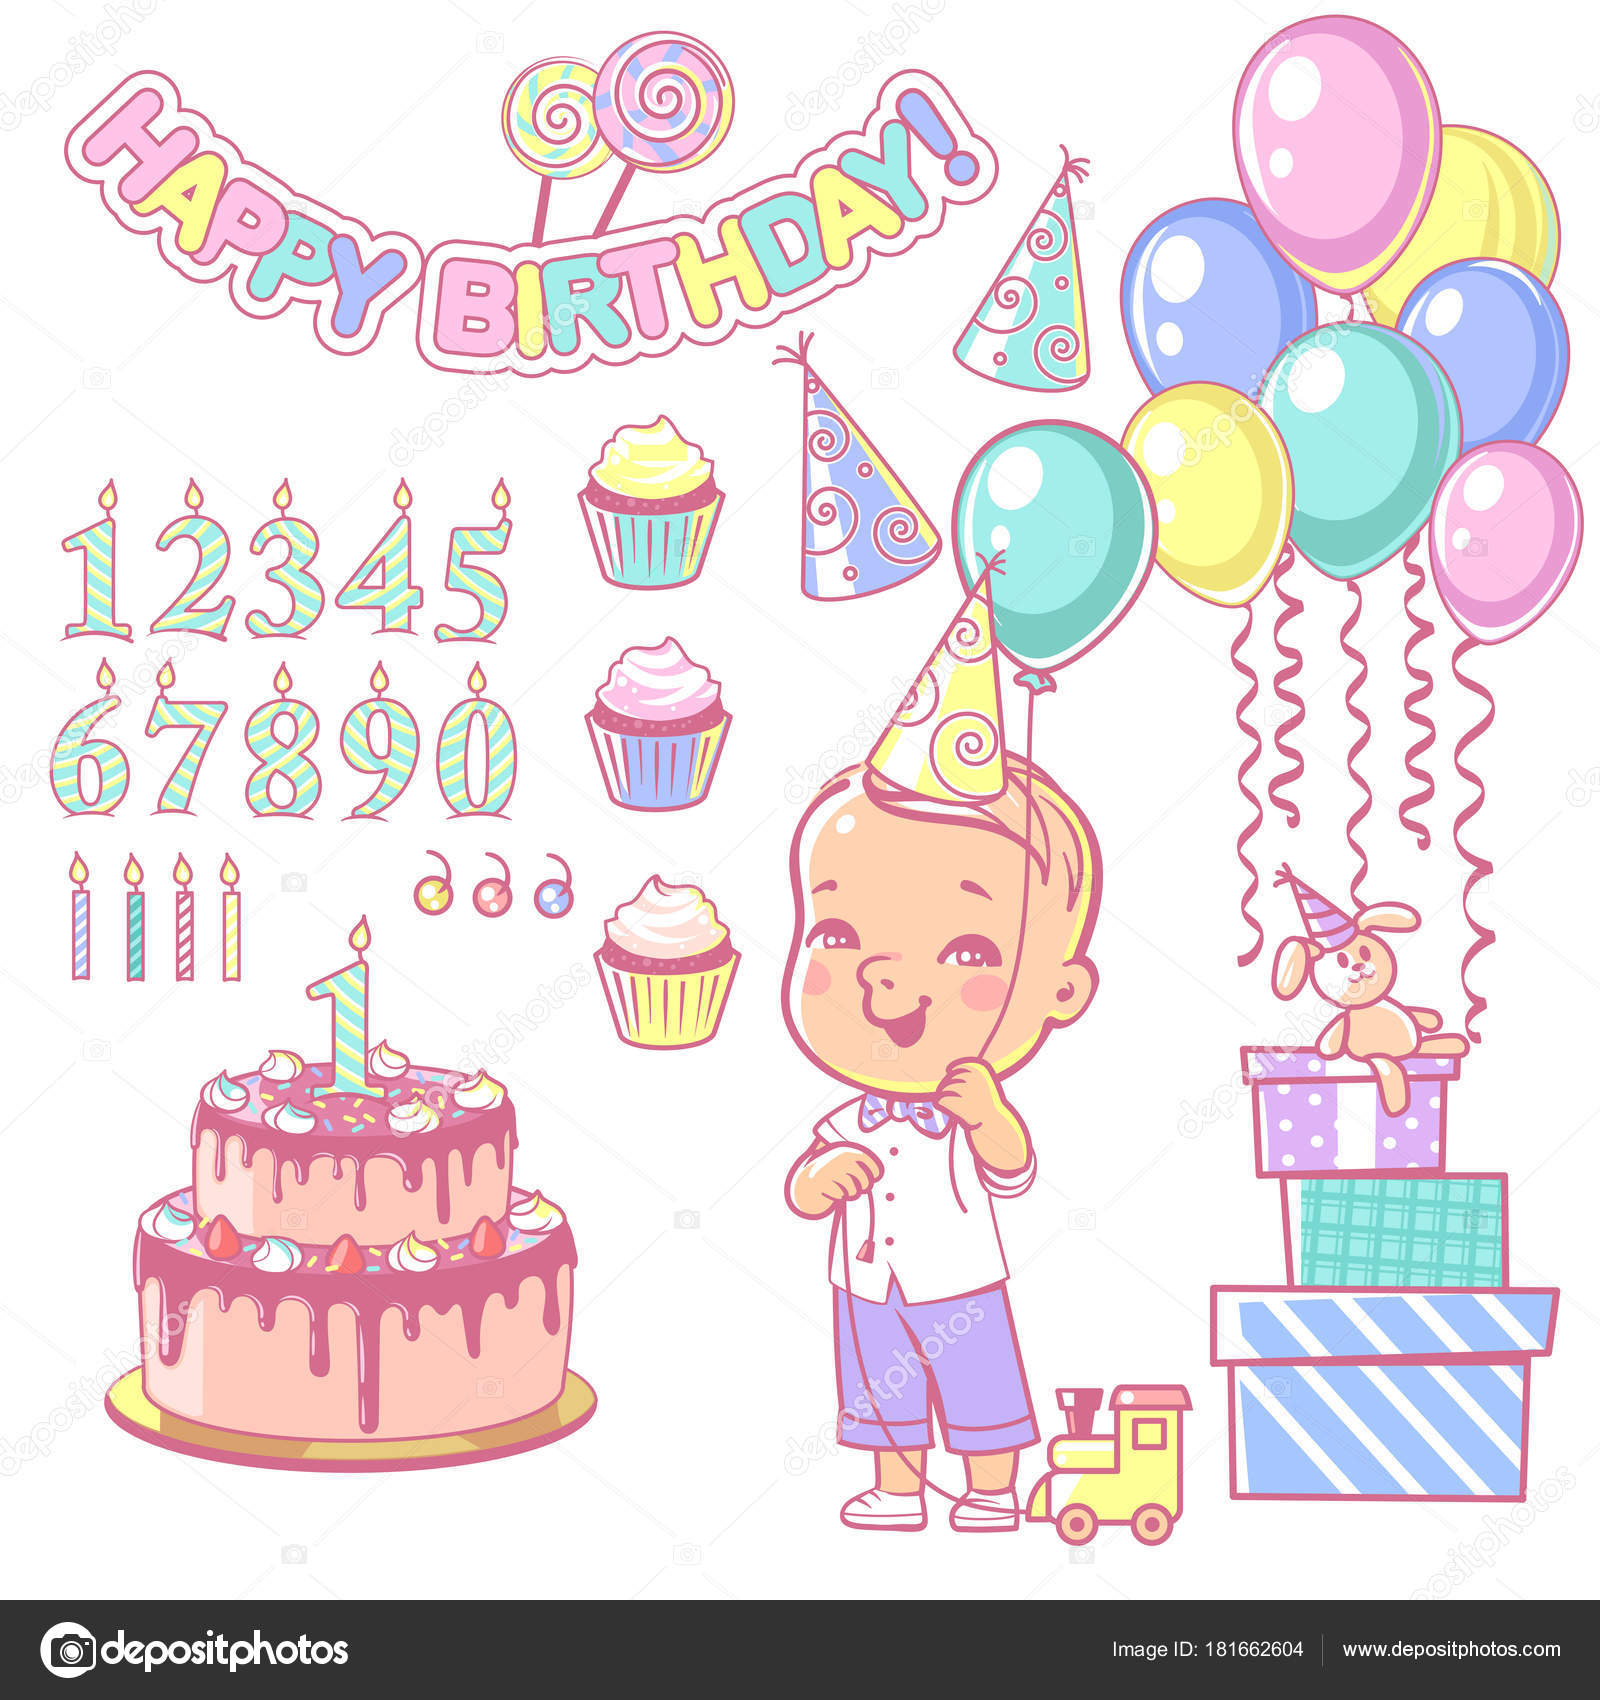 Birthday Party Decoration Set Cake And Cupcakes Constructor With Of Numbers Candles Gifts Garlandair Balloons Design Elements Toddler Boy Wearing